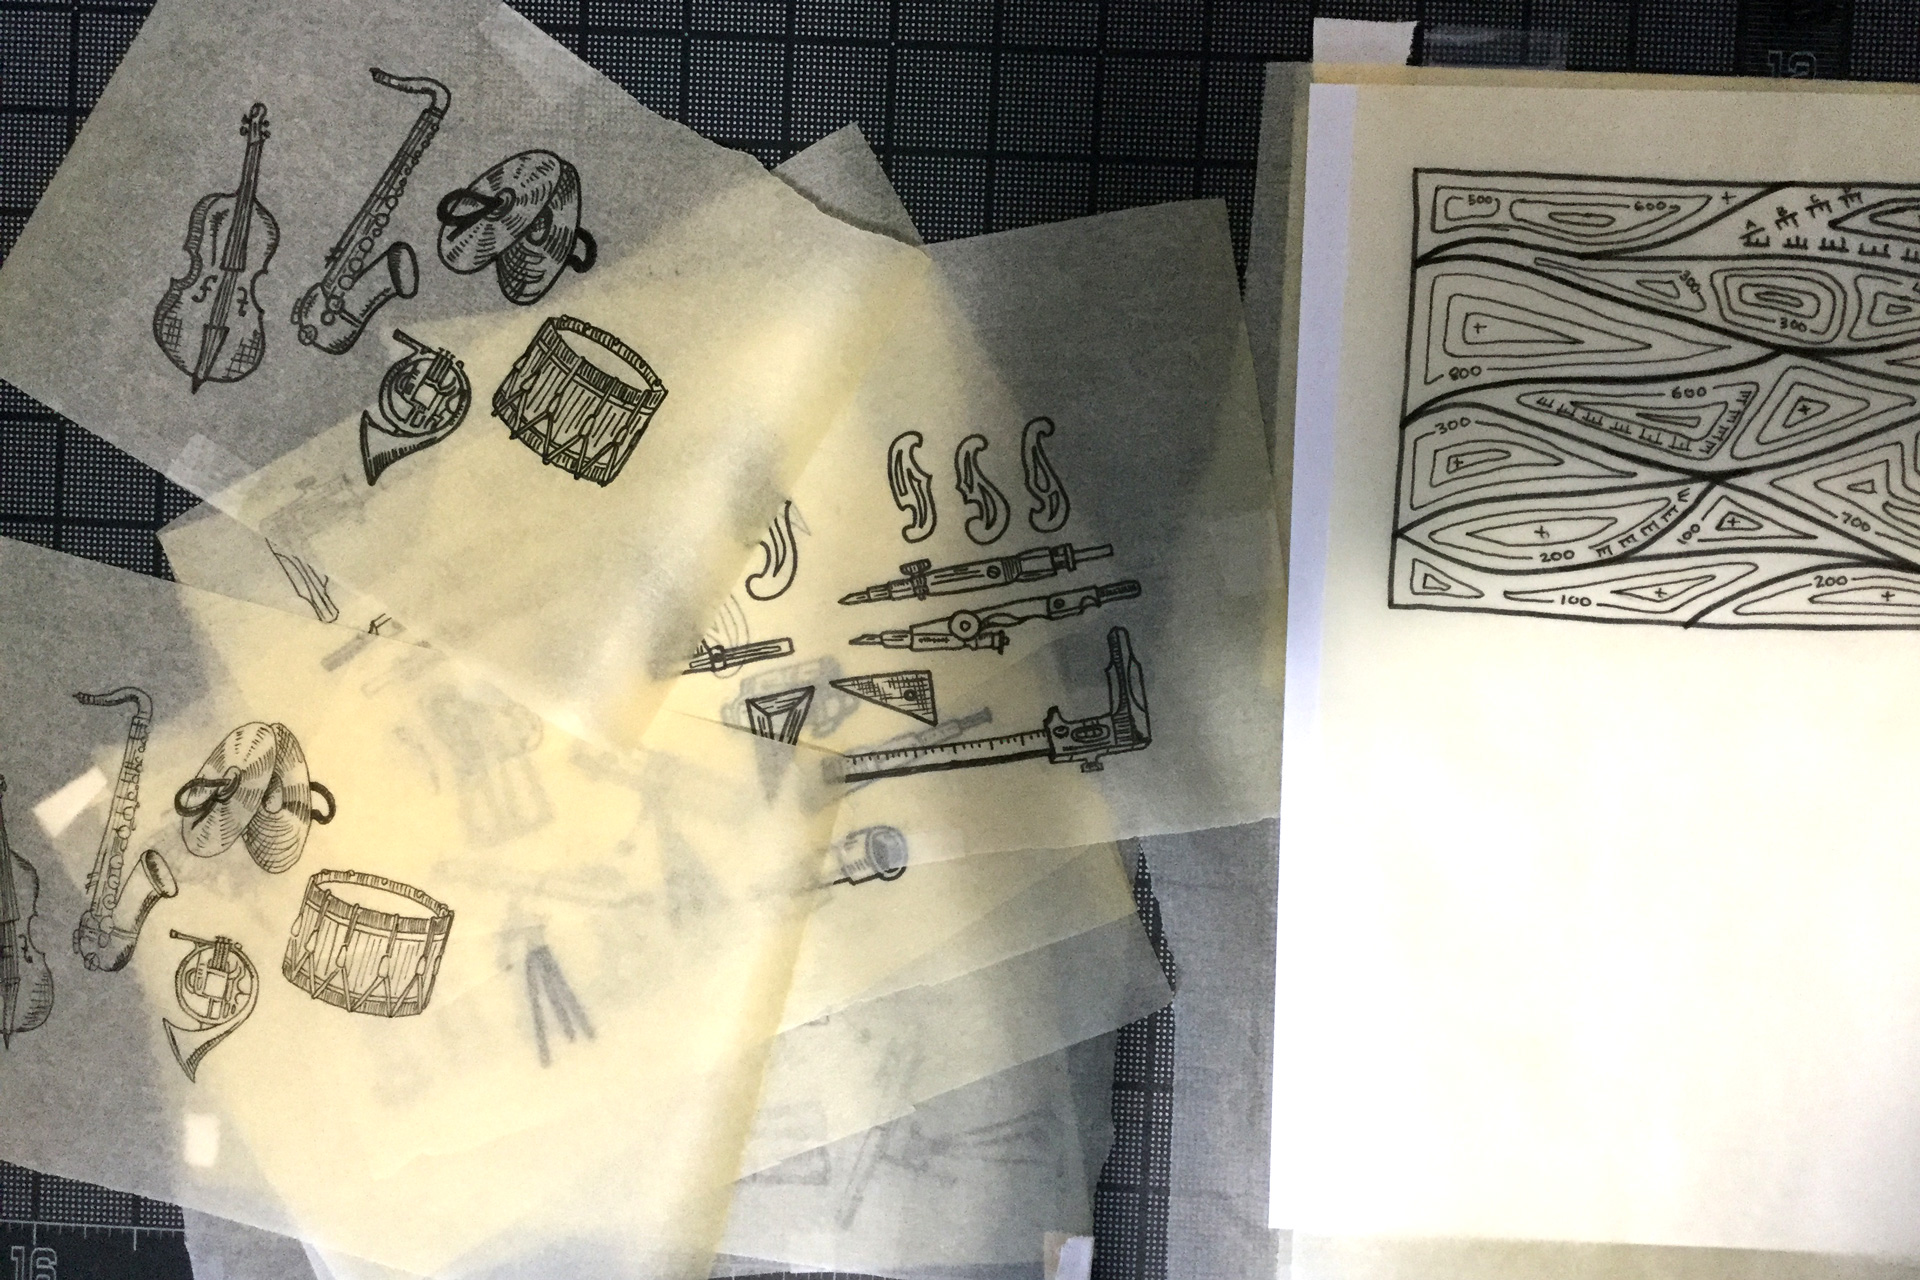 Sheets of tracing paper displaying illustrations of musical instruments